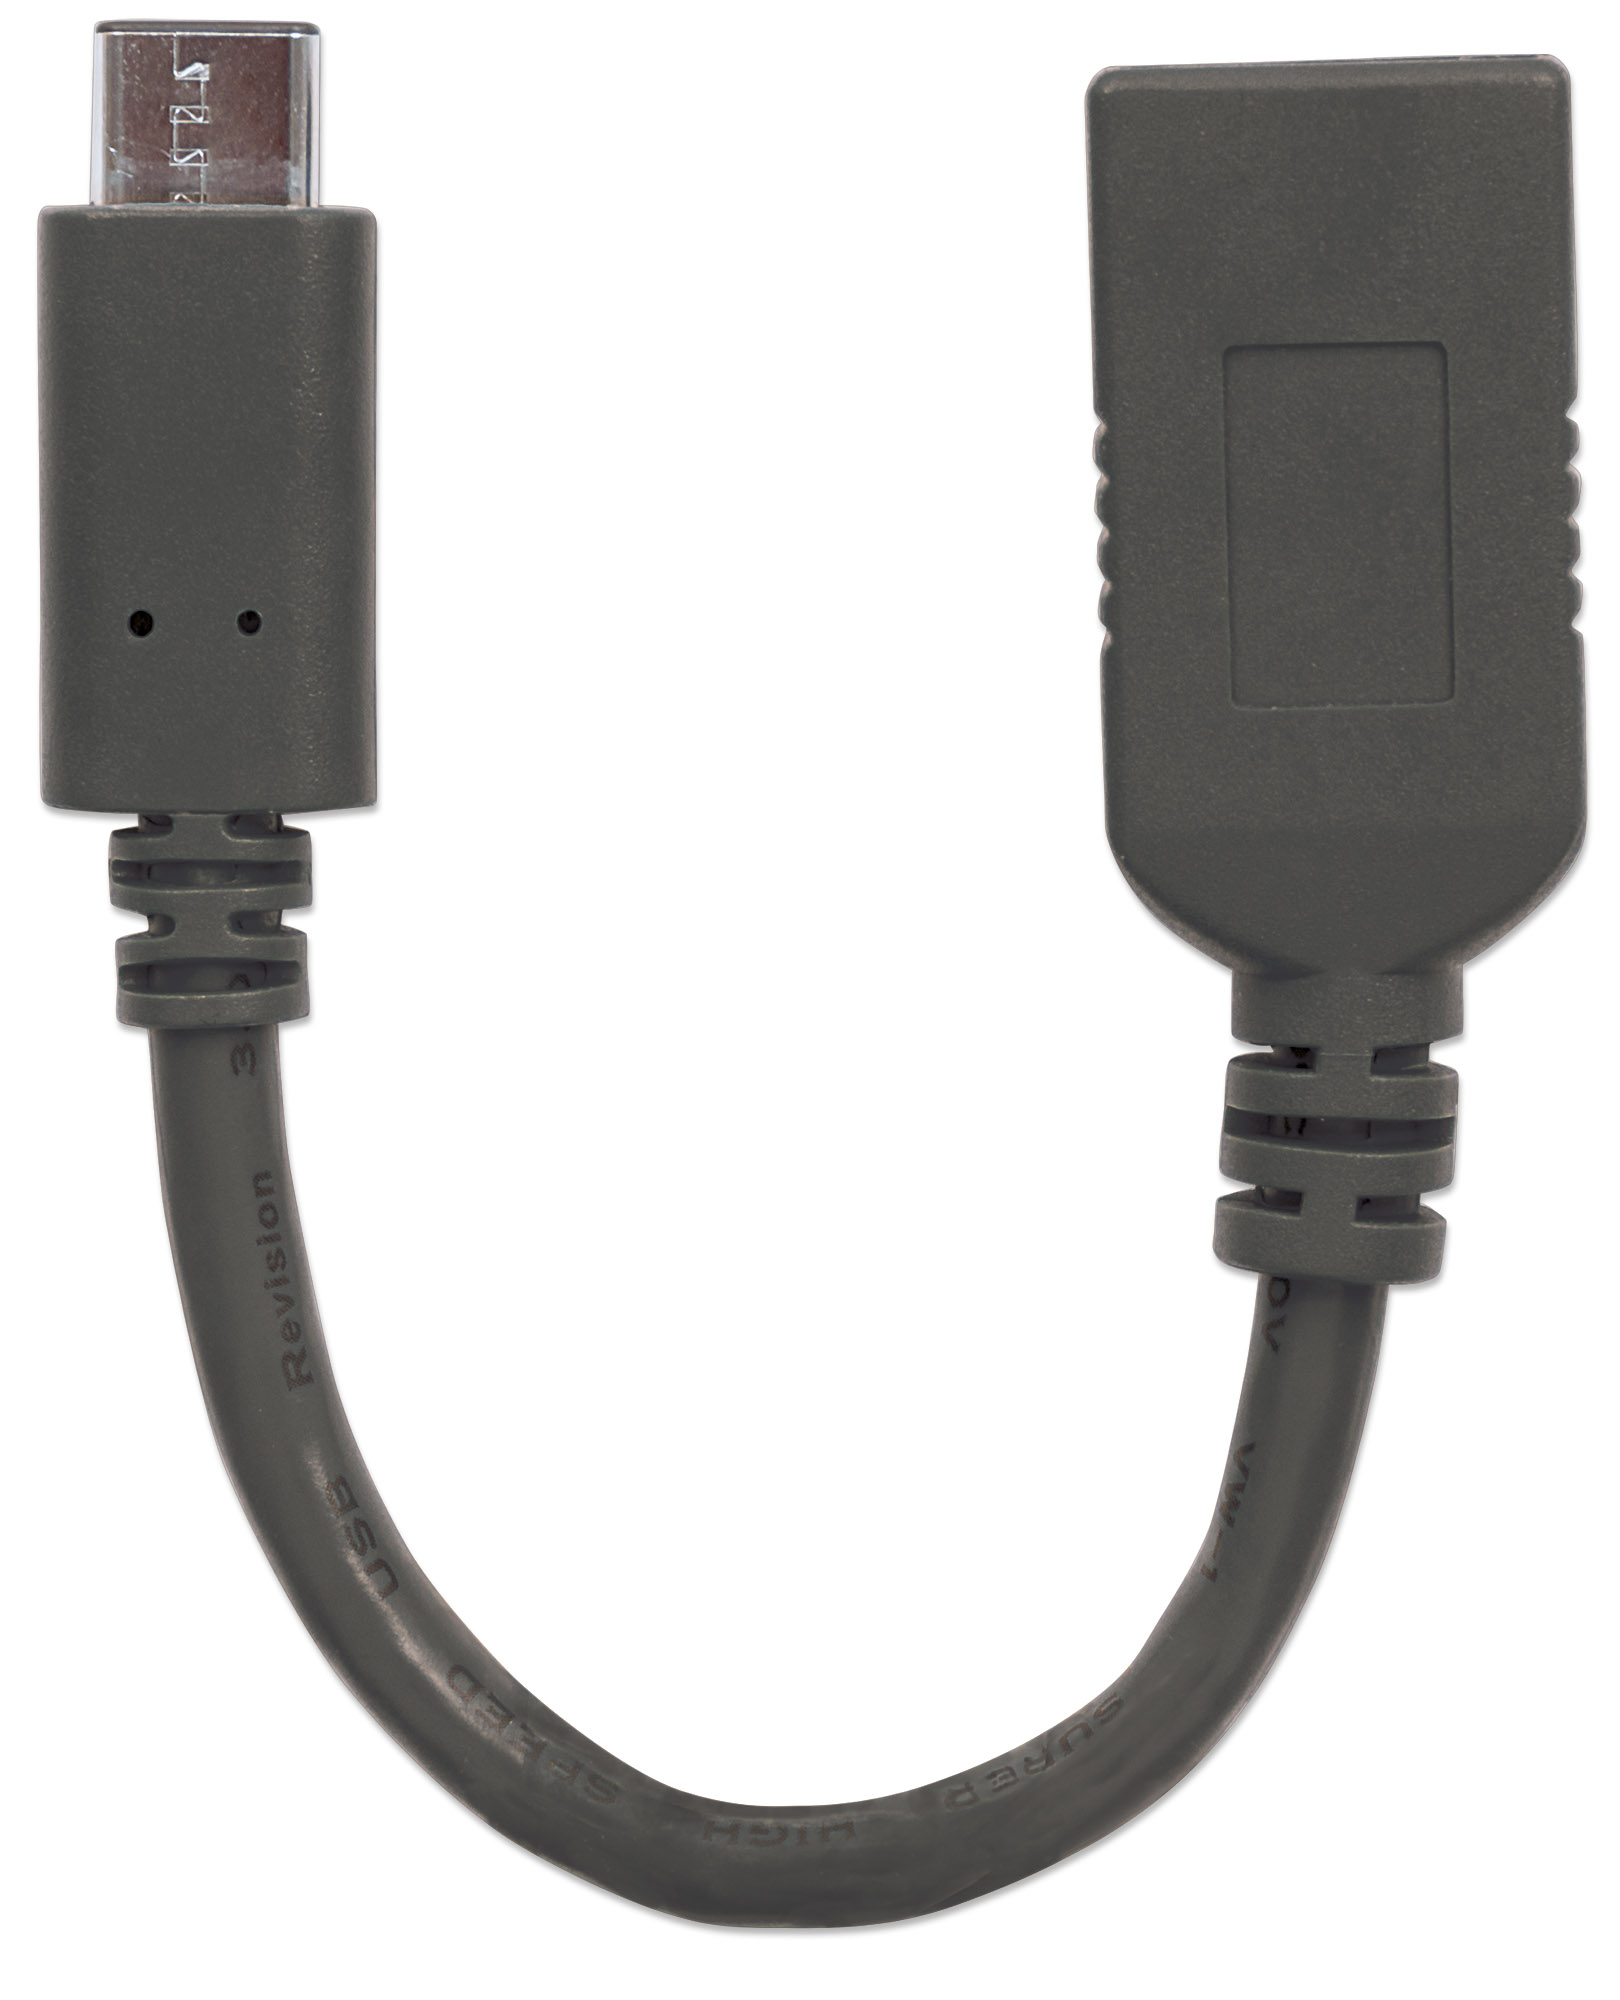 SuperSpeed USB-C Device Cable